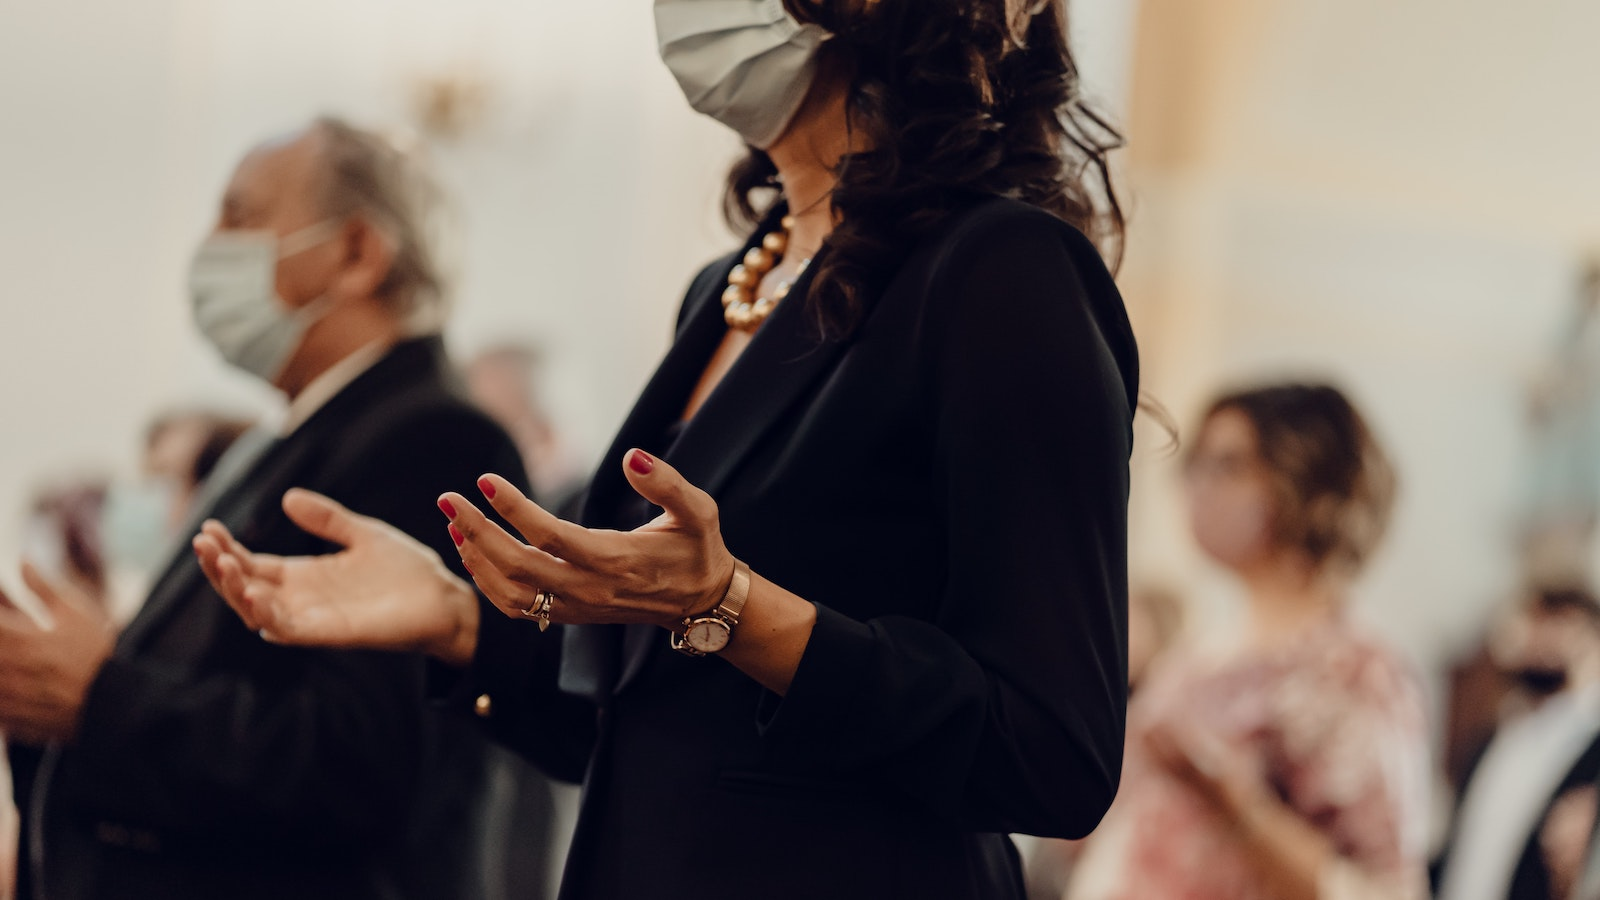 Masked woman with hands up in a worship setting